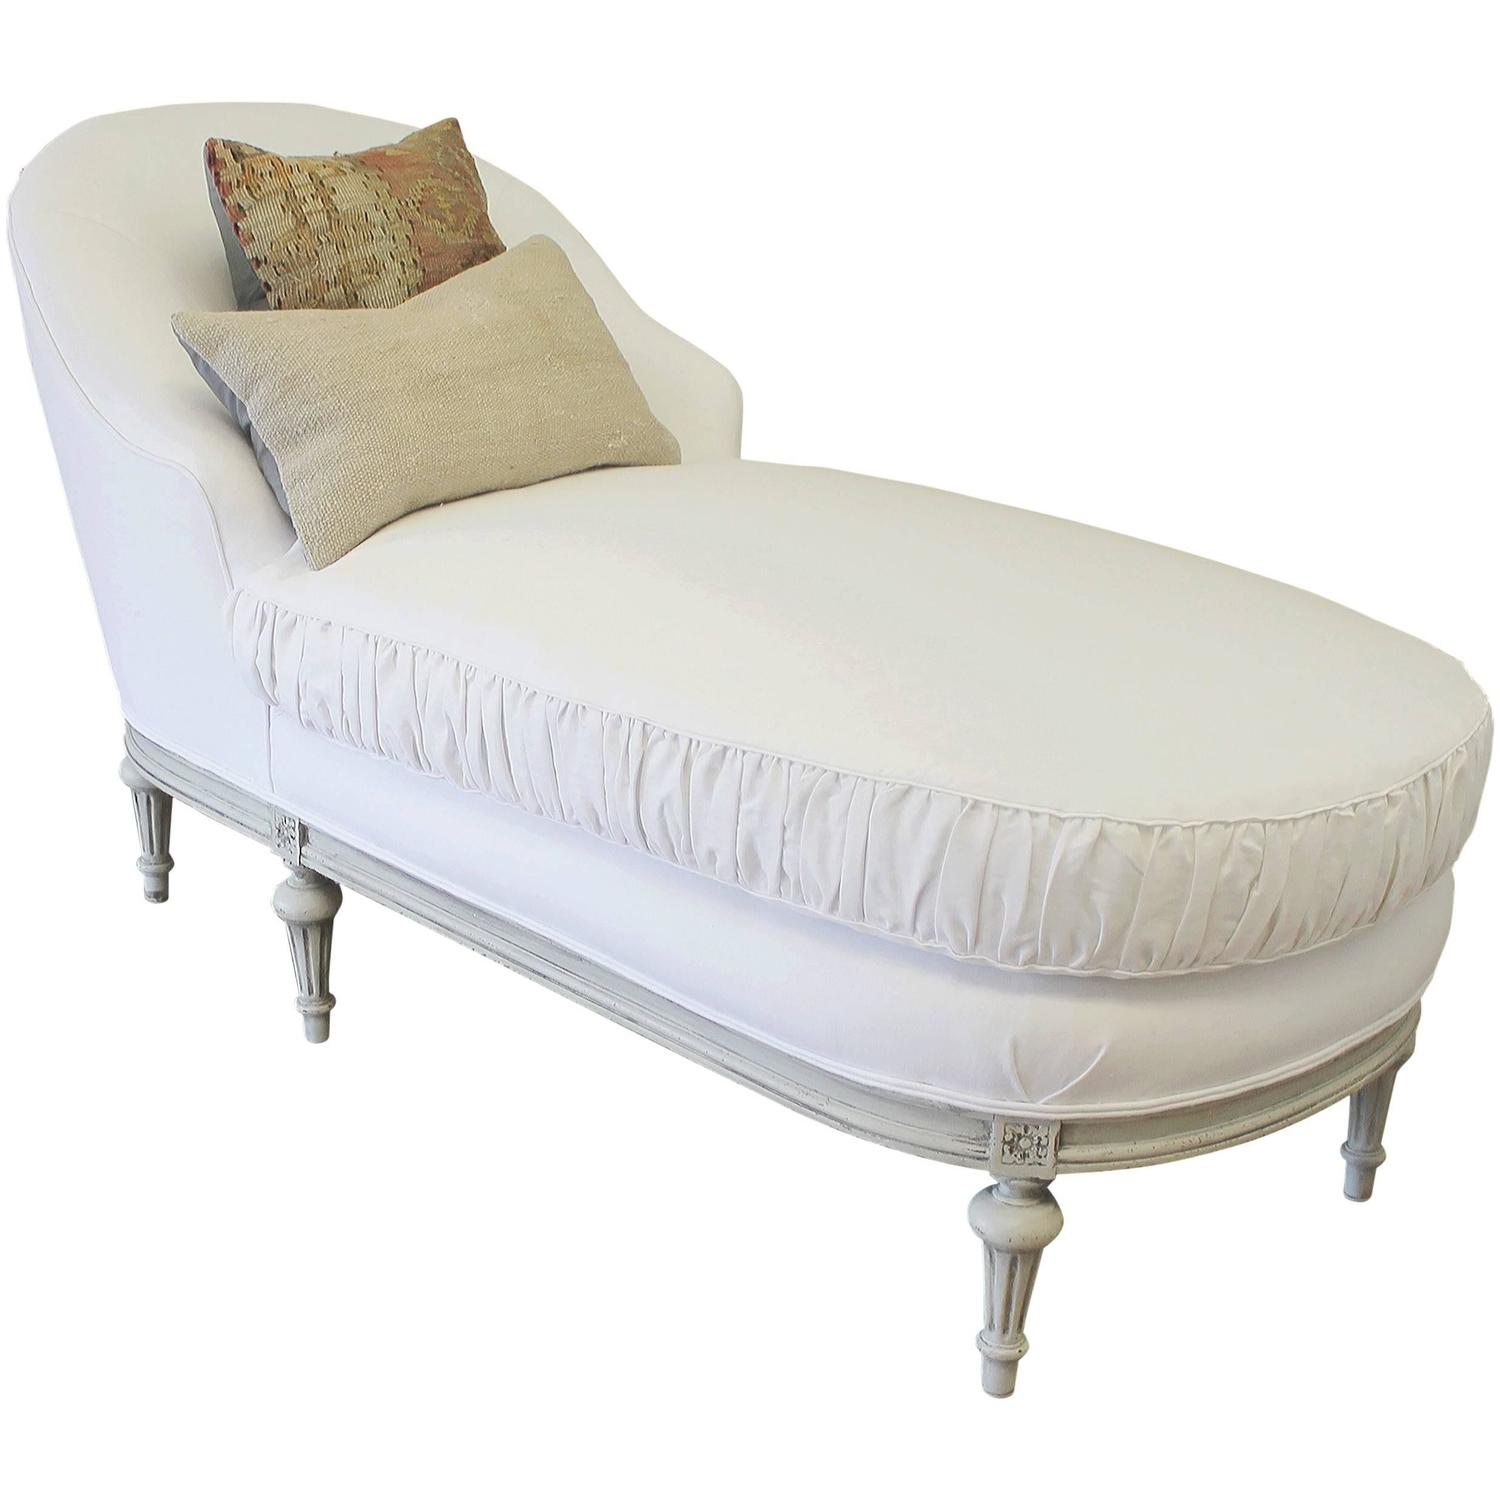 Antique louis xvi style french chaise longue in belgian - Chaise louis xvi pas cher ...